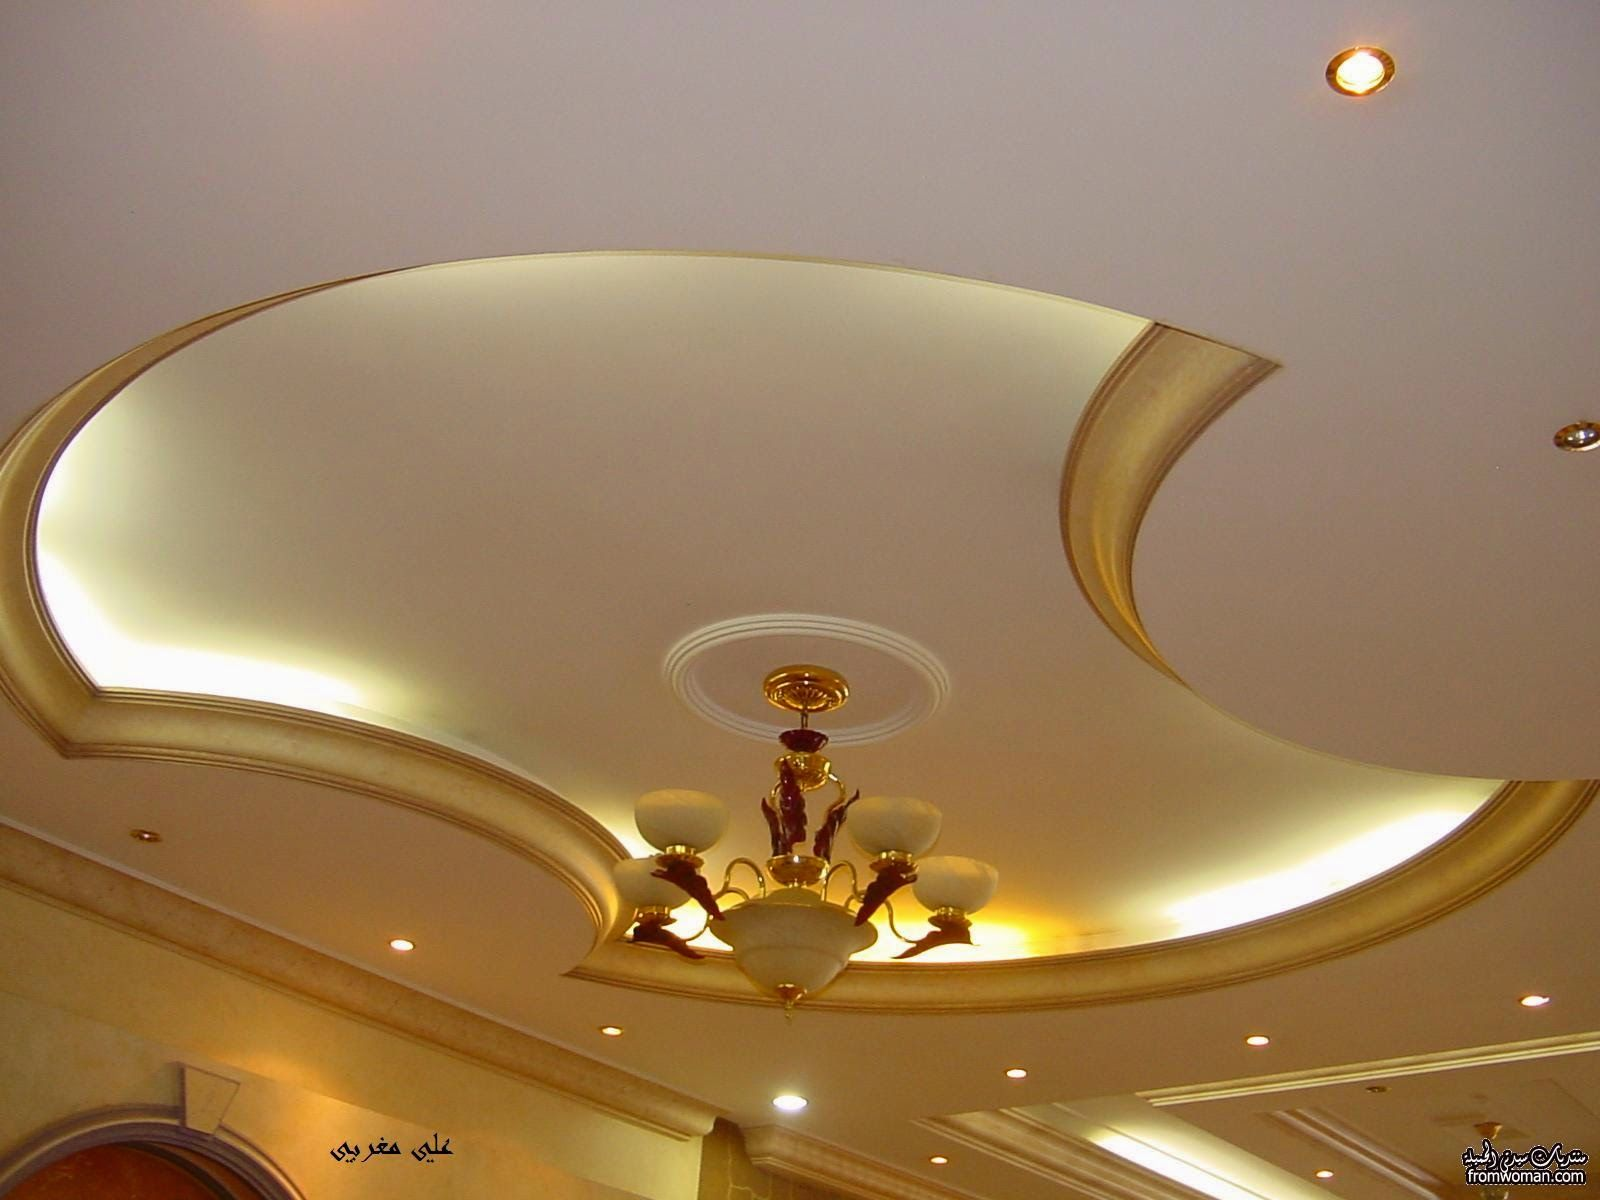 4 Curved gypsum ceiling designs for living room 2015 Decor ideas